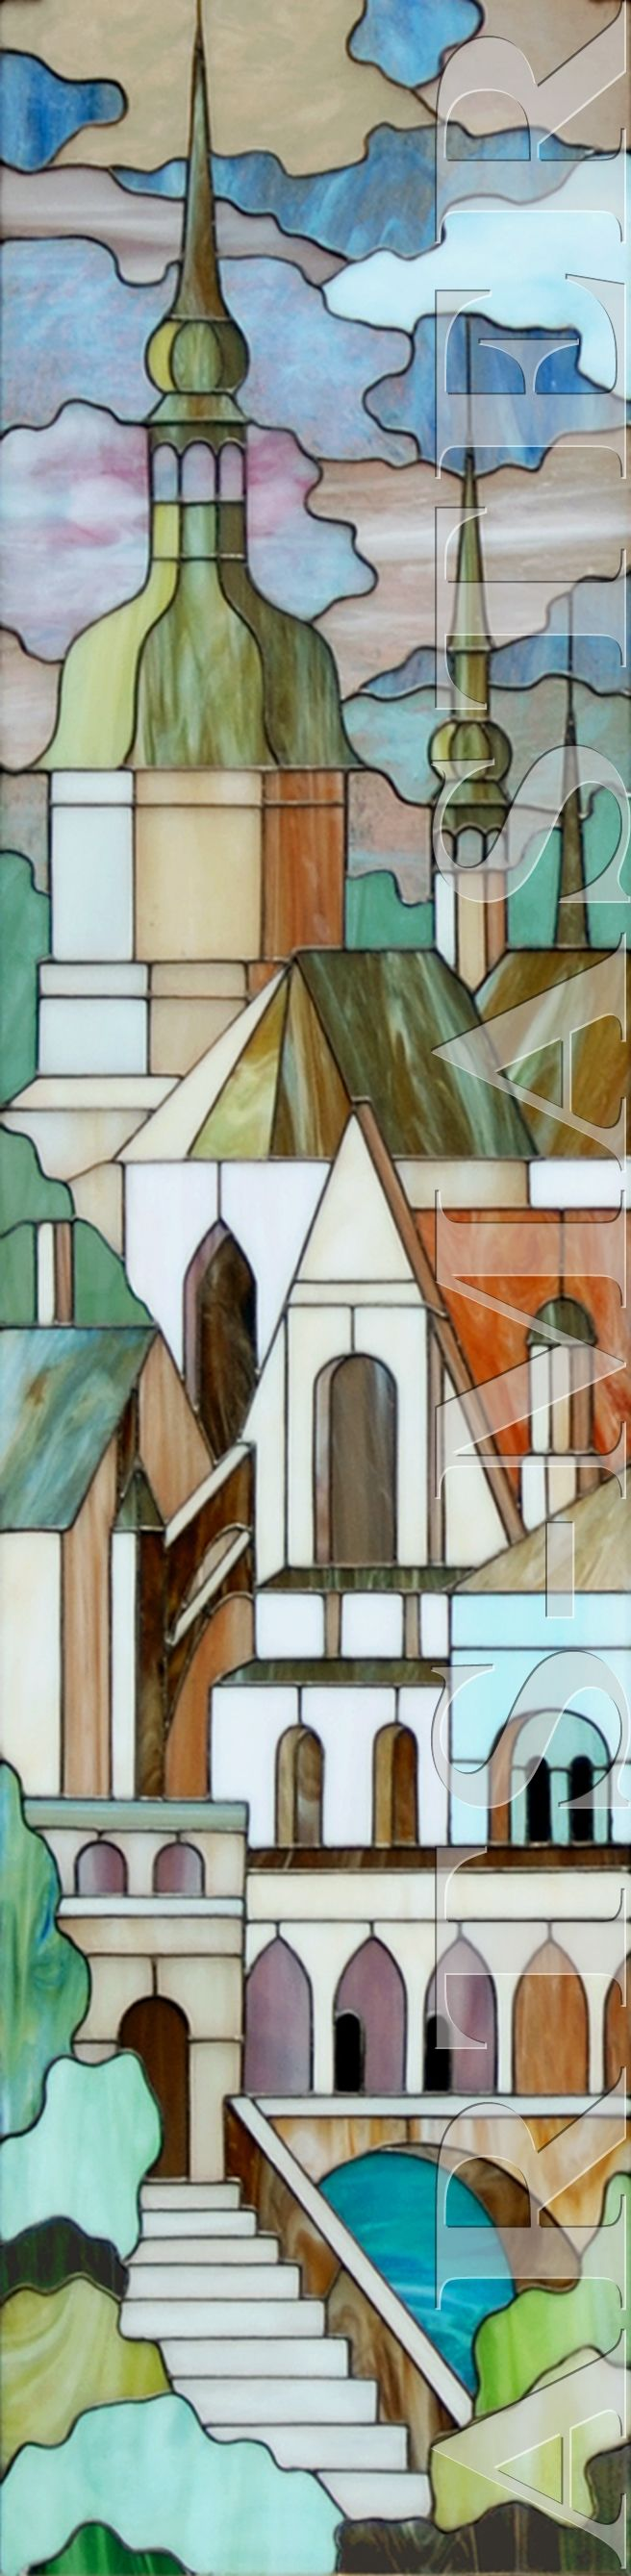 """Landscape"" -"" By: Elena Artsybusheva. Stained glass was made ​​in the technique of ""Tiffany""."